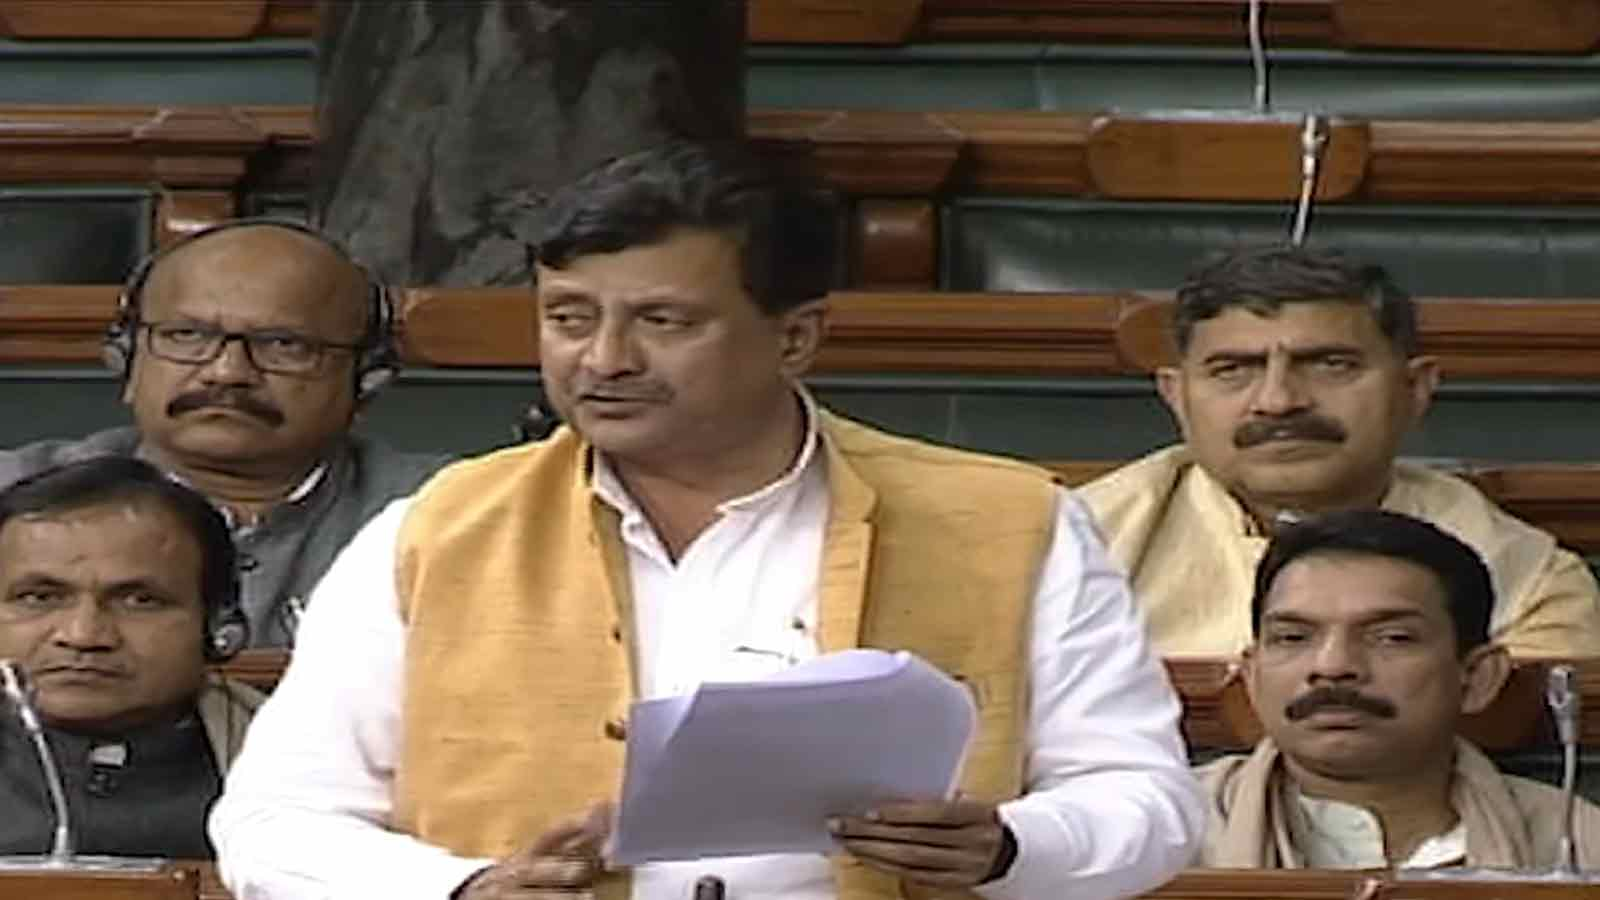 sanskrit-keeps-diabetes-cholesterol-in-check-bjp-mp-in-parliament